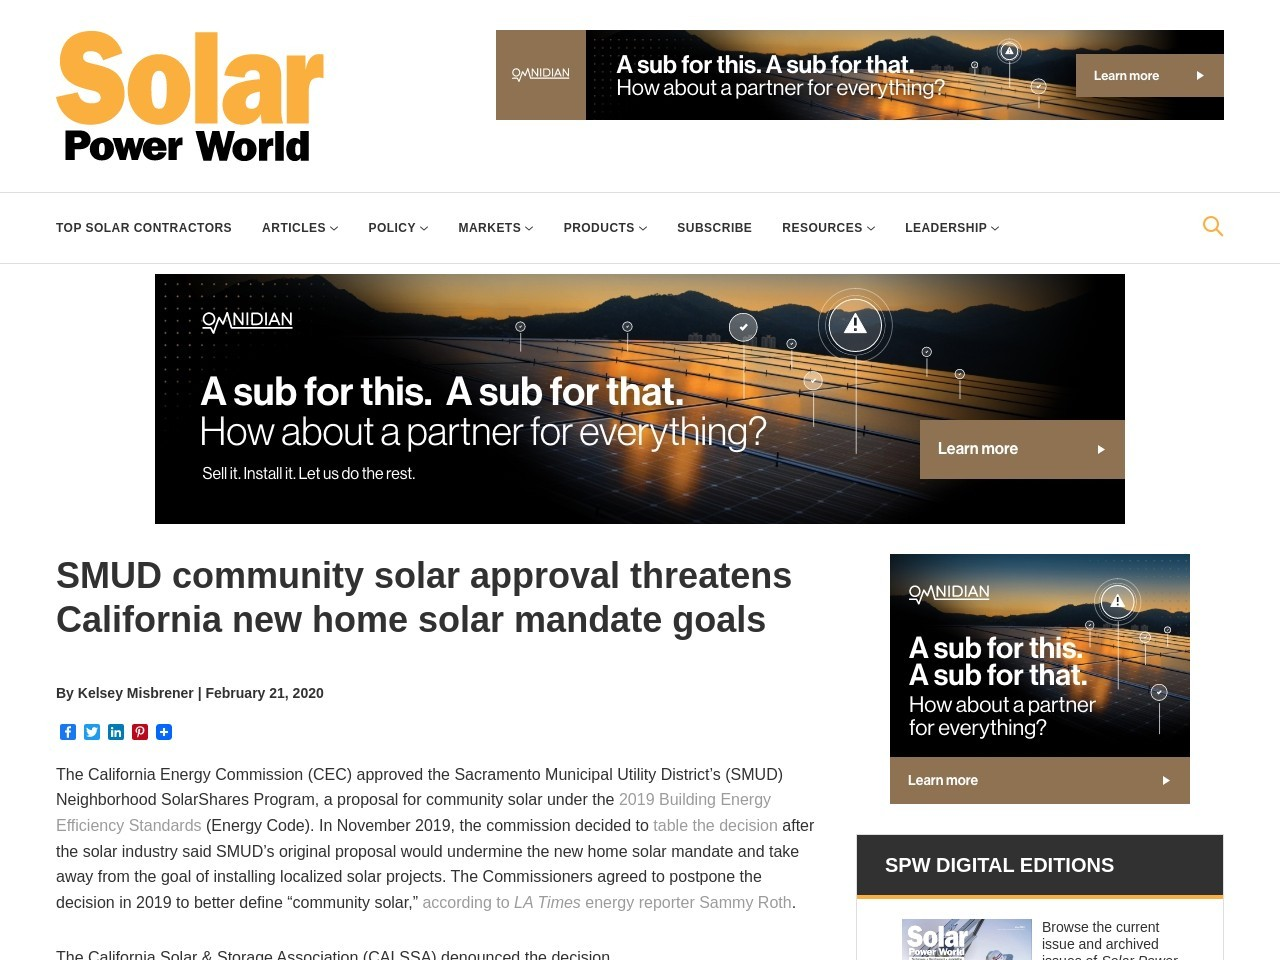 SMUD community solar approval threatens California new home solar mandate goals